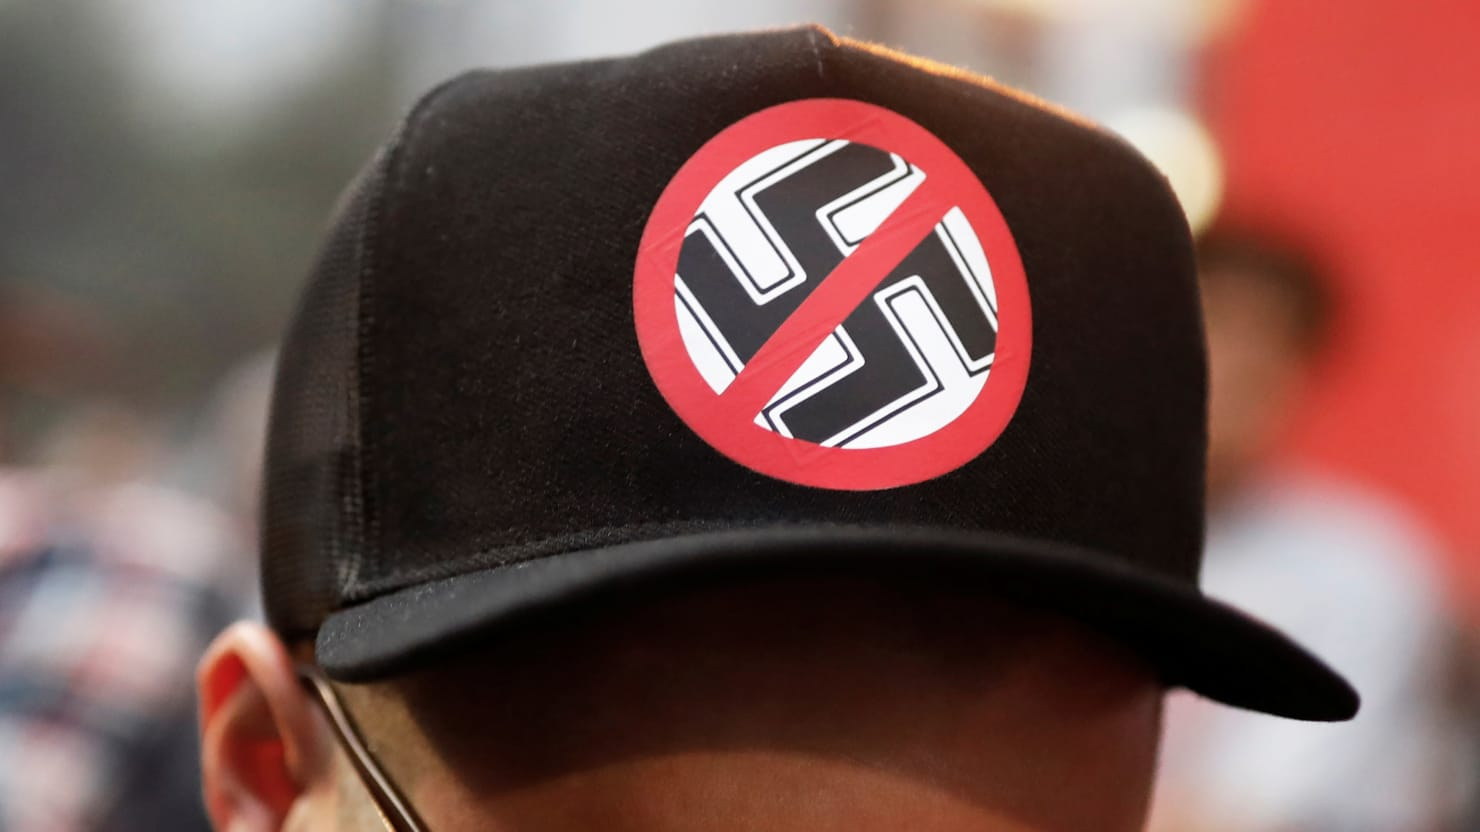 German Reinmann Family Gives $11 Million to Charity After Finding Out Ancestors Supported Hitler